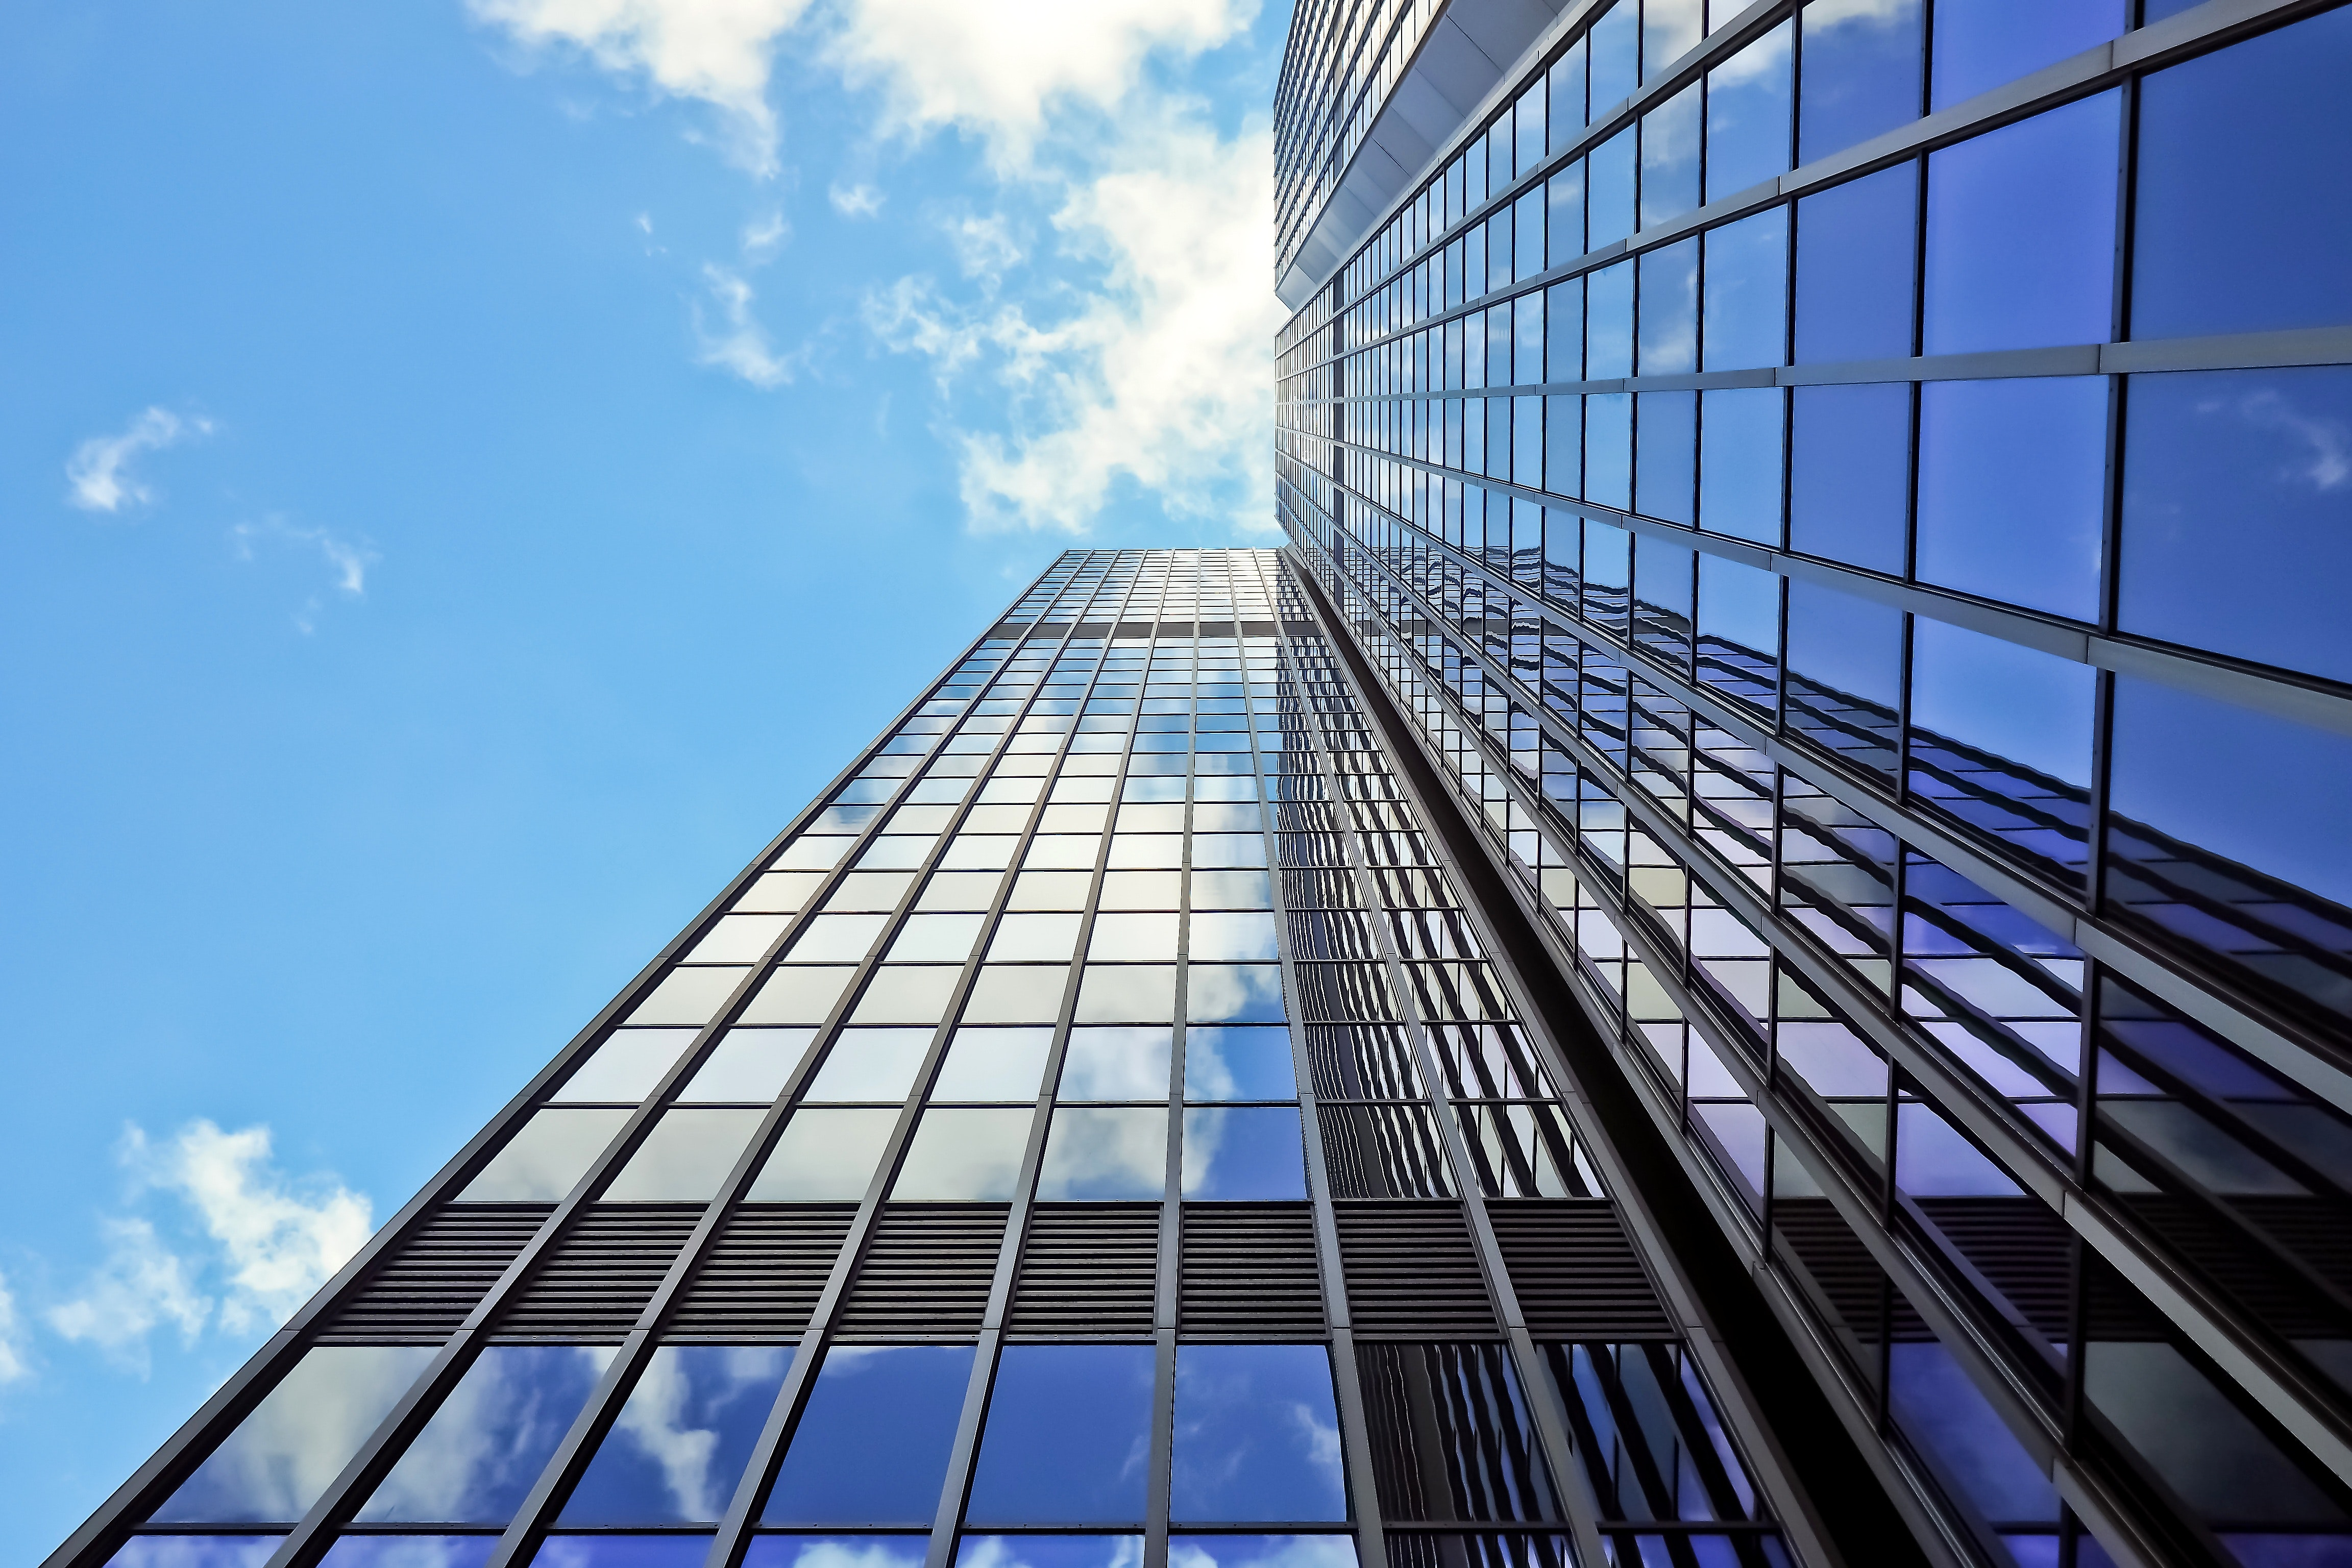 architecture-building-glass-417363